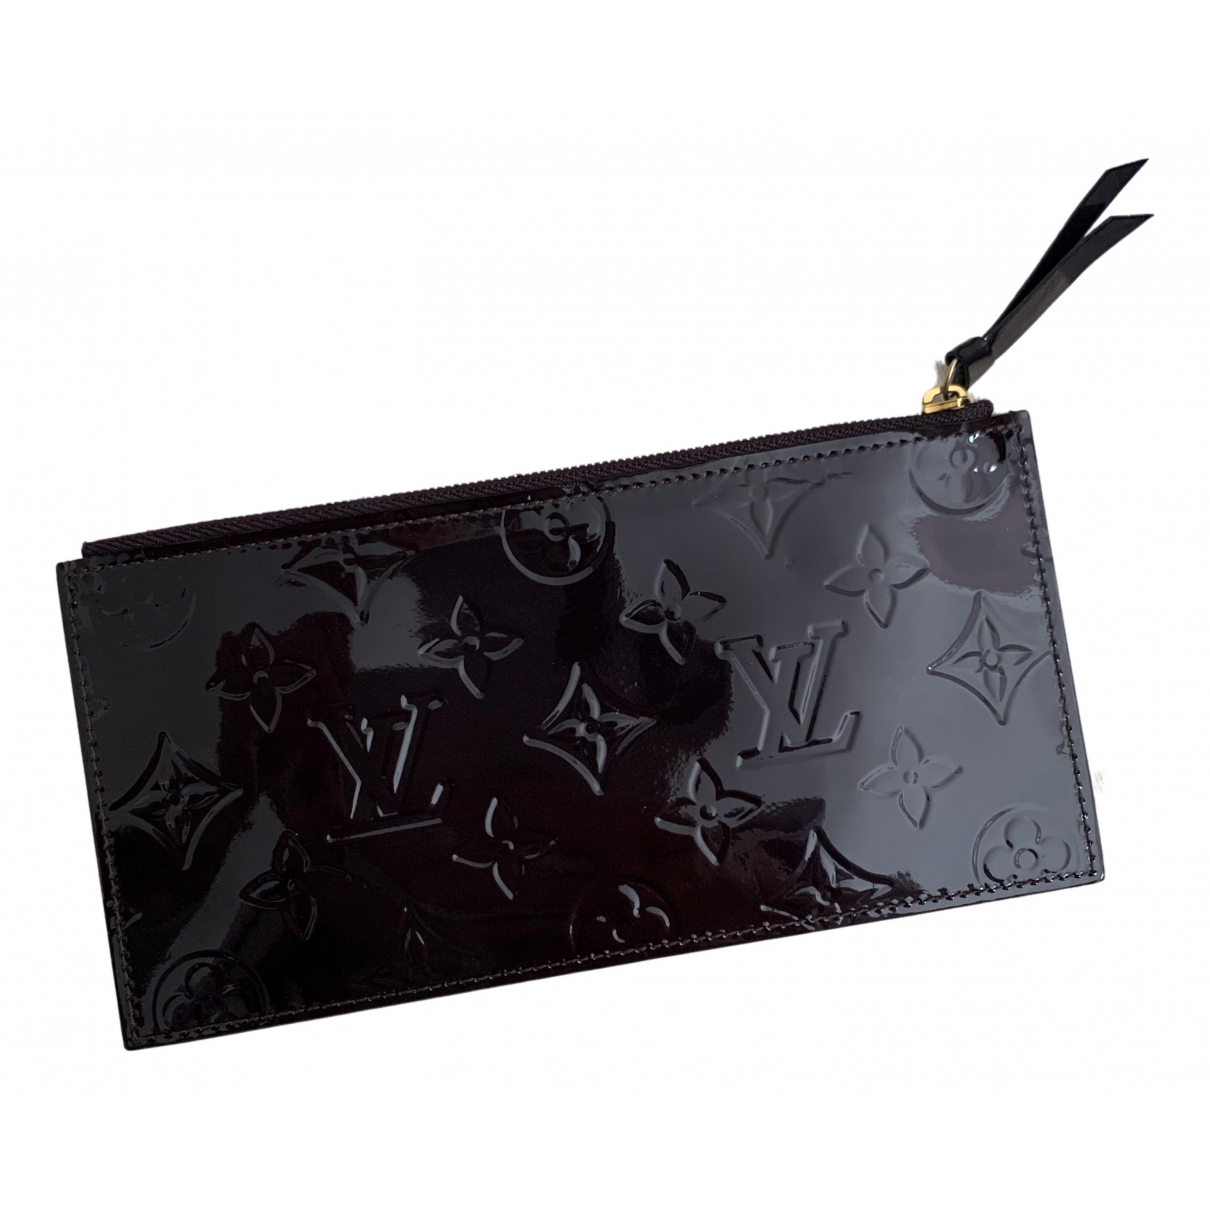 Louis Vuitton \N Burgundy Patent leather Clutch bag for Women \N